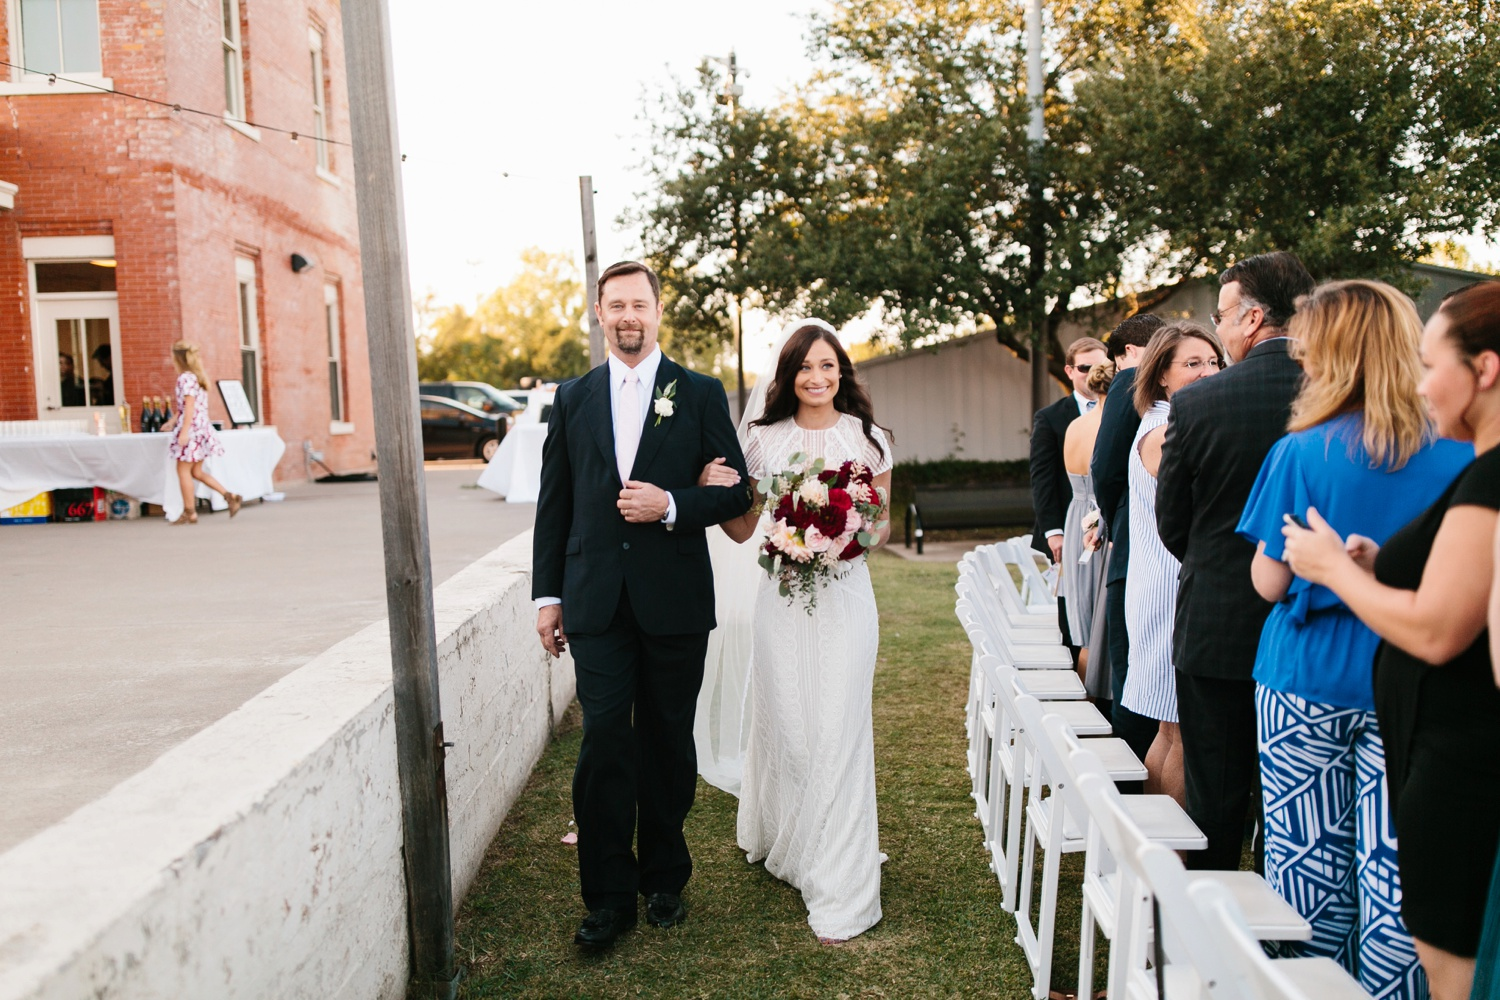 Kadee + Tyler | a raw, emotional wedding at the Filter Building on White Rock Lake in Dallas, TX by North Texas Wedding Photographer, Rachel Meagan Photography 120